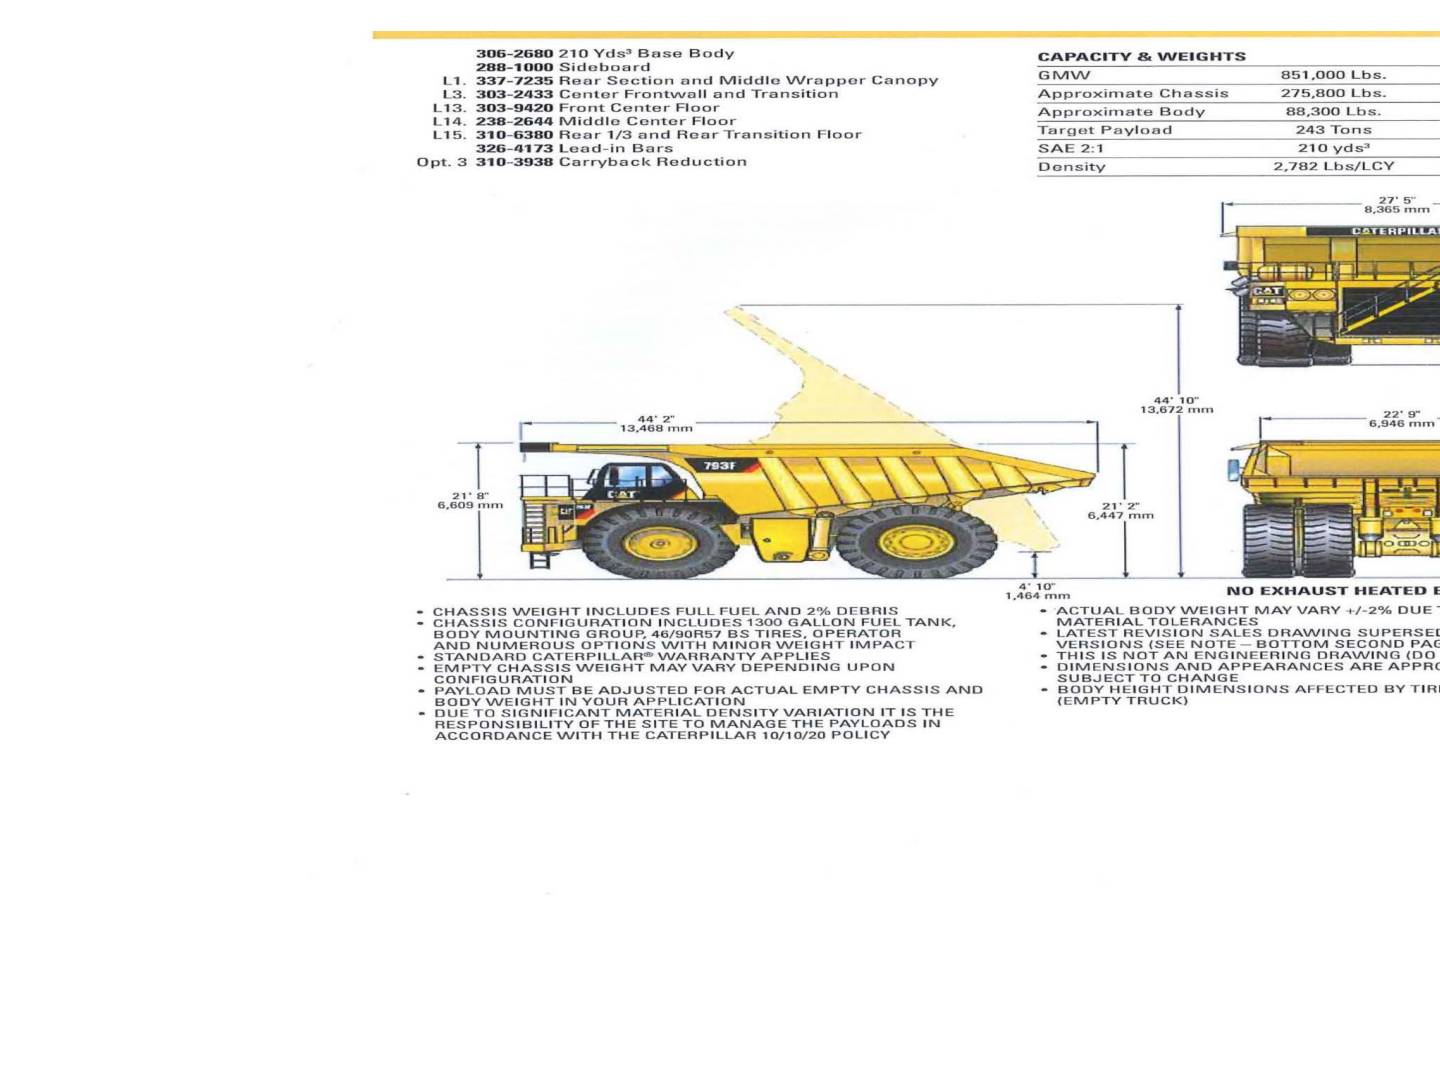 CATERPILLAR 793 TRAYS  Page | Cavpower